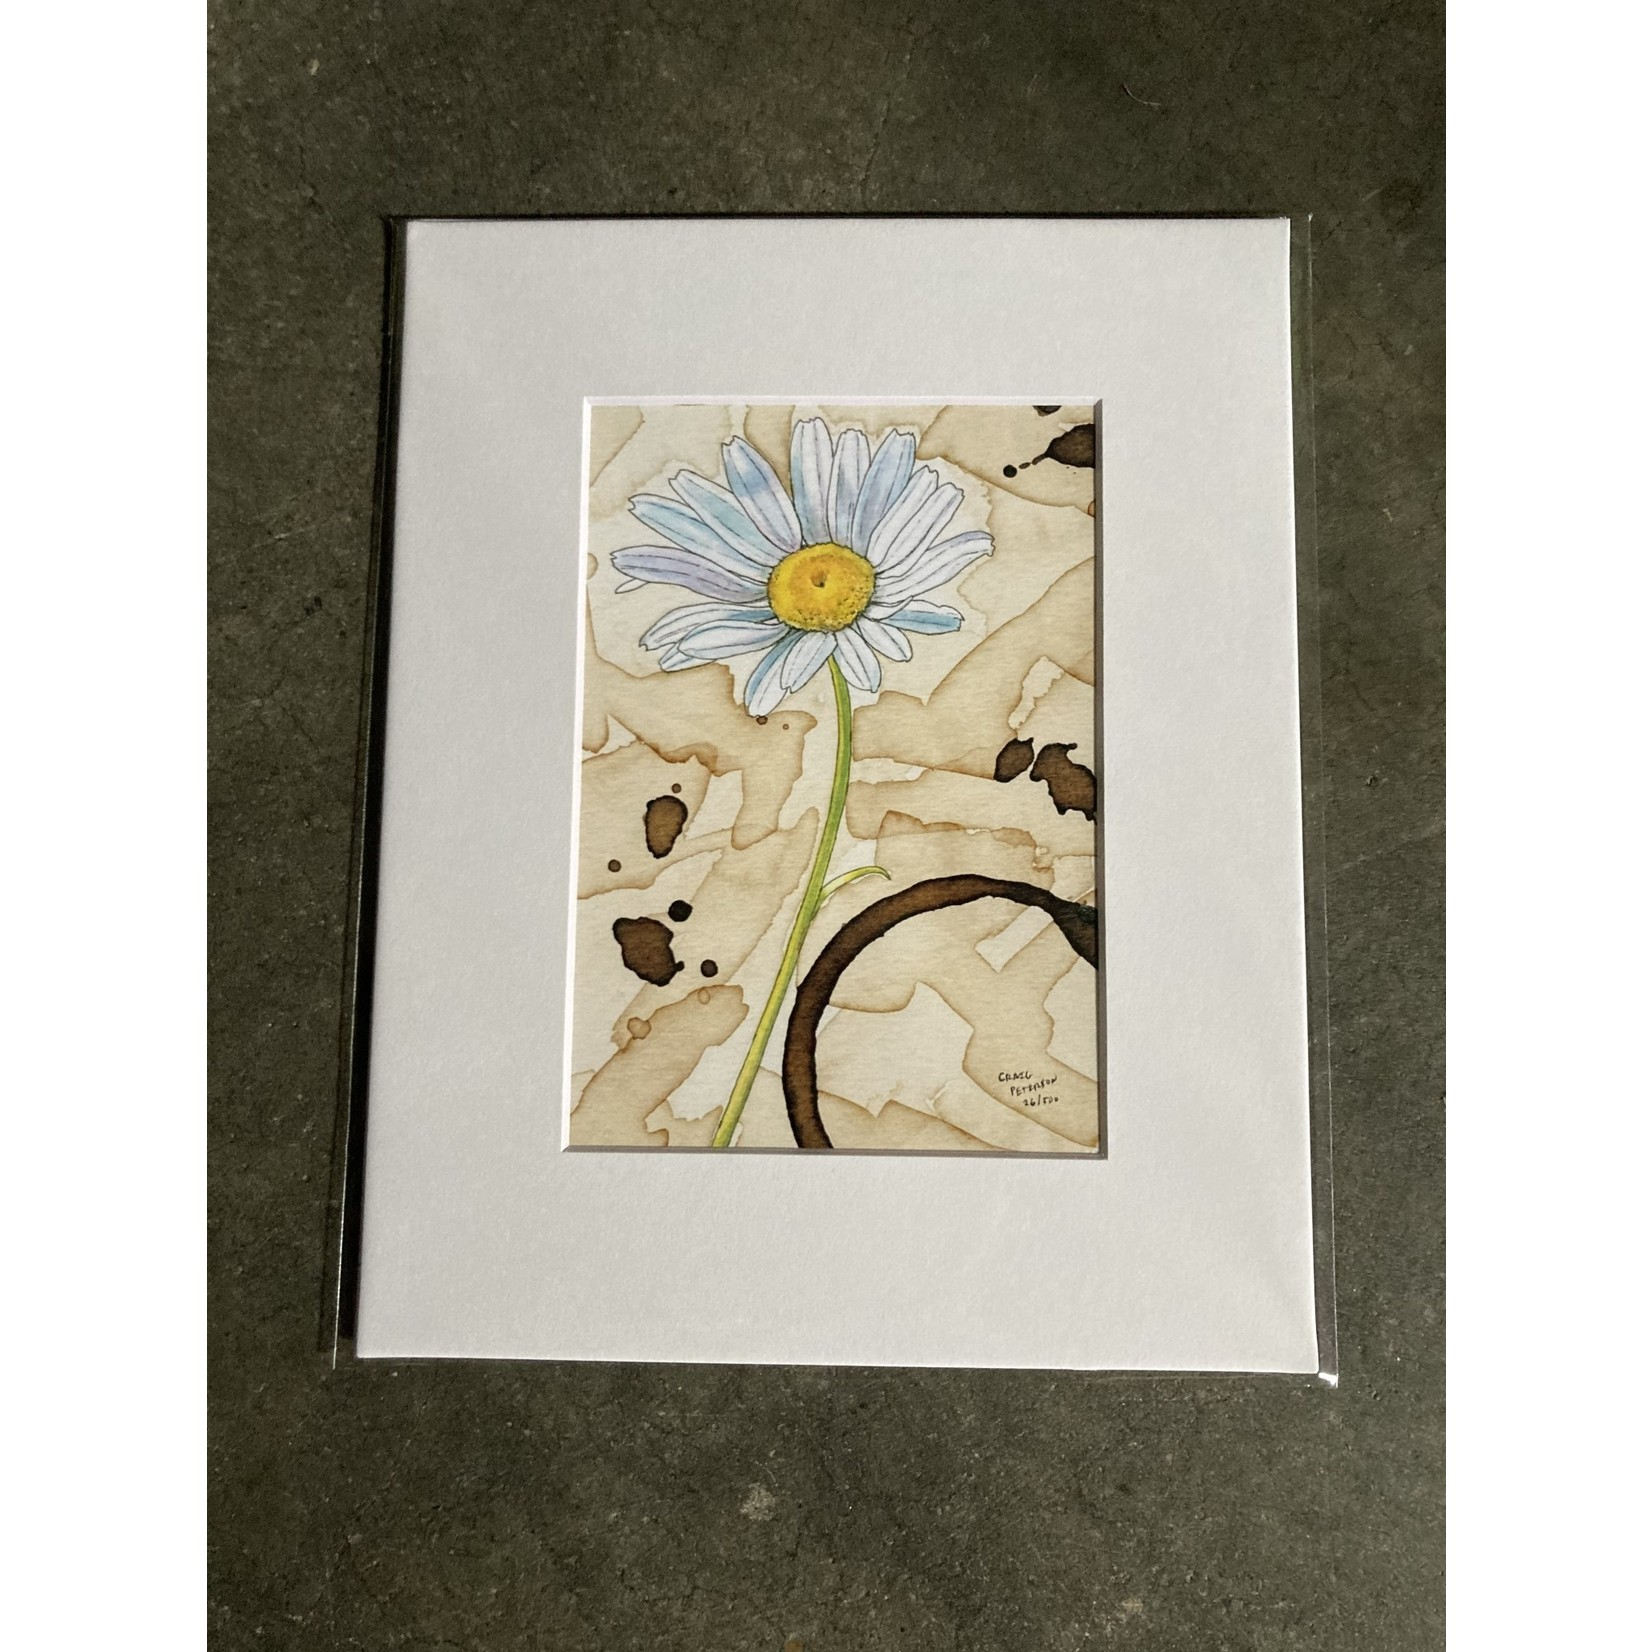 Craig Peterson Craig Peterson   Daisy coffee stain watercolor